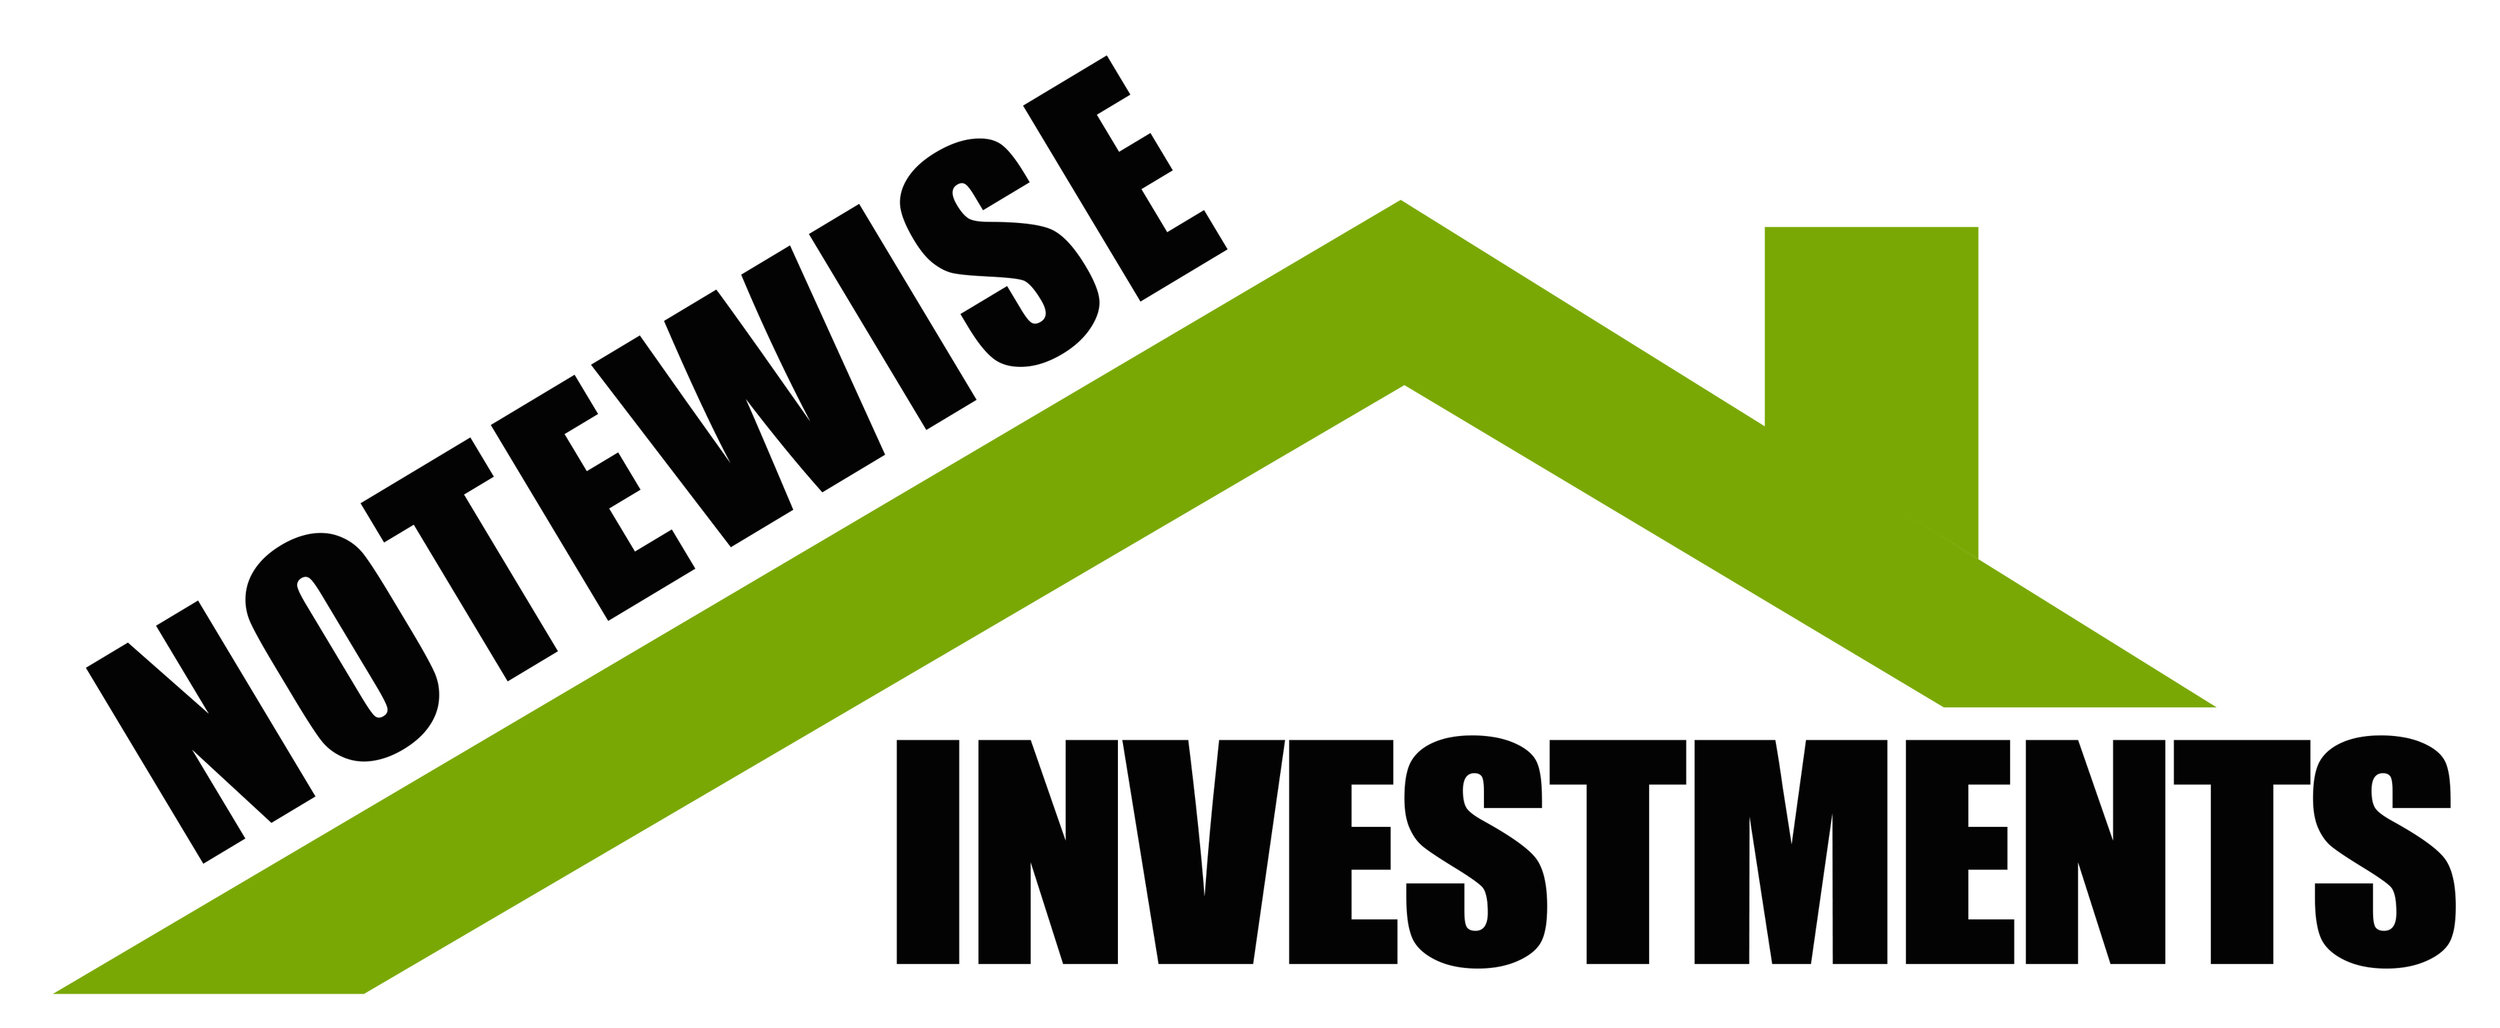 Notewise Investments1_logo-2.jpg